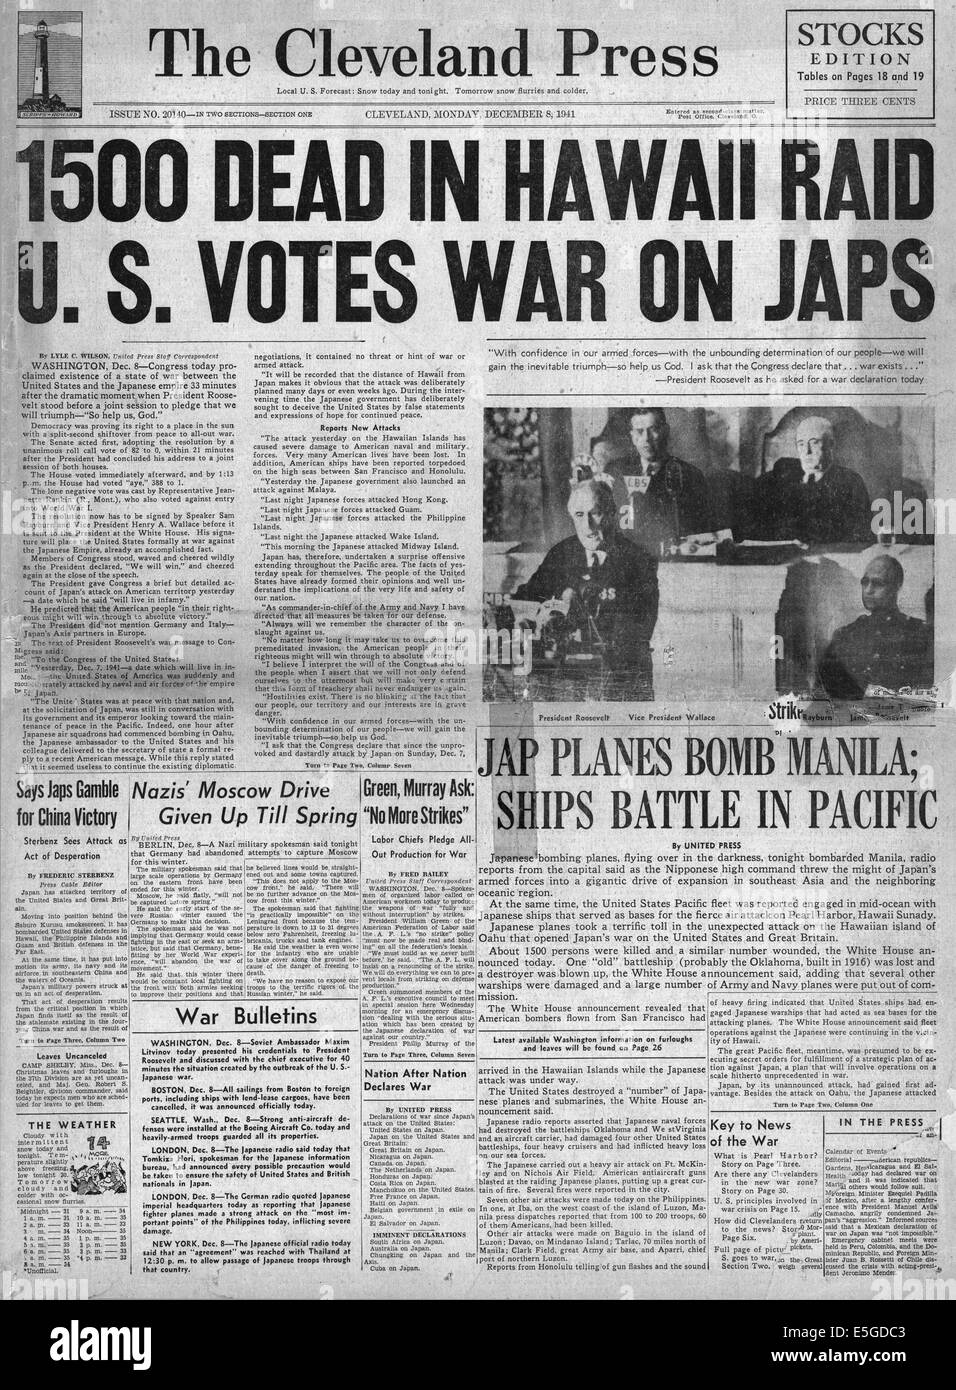 1941 The Cleveland Press front page reporting Japanese